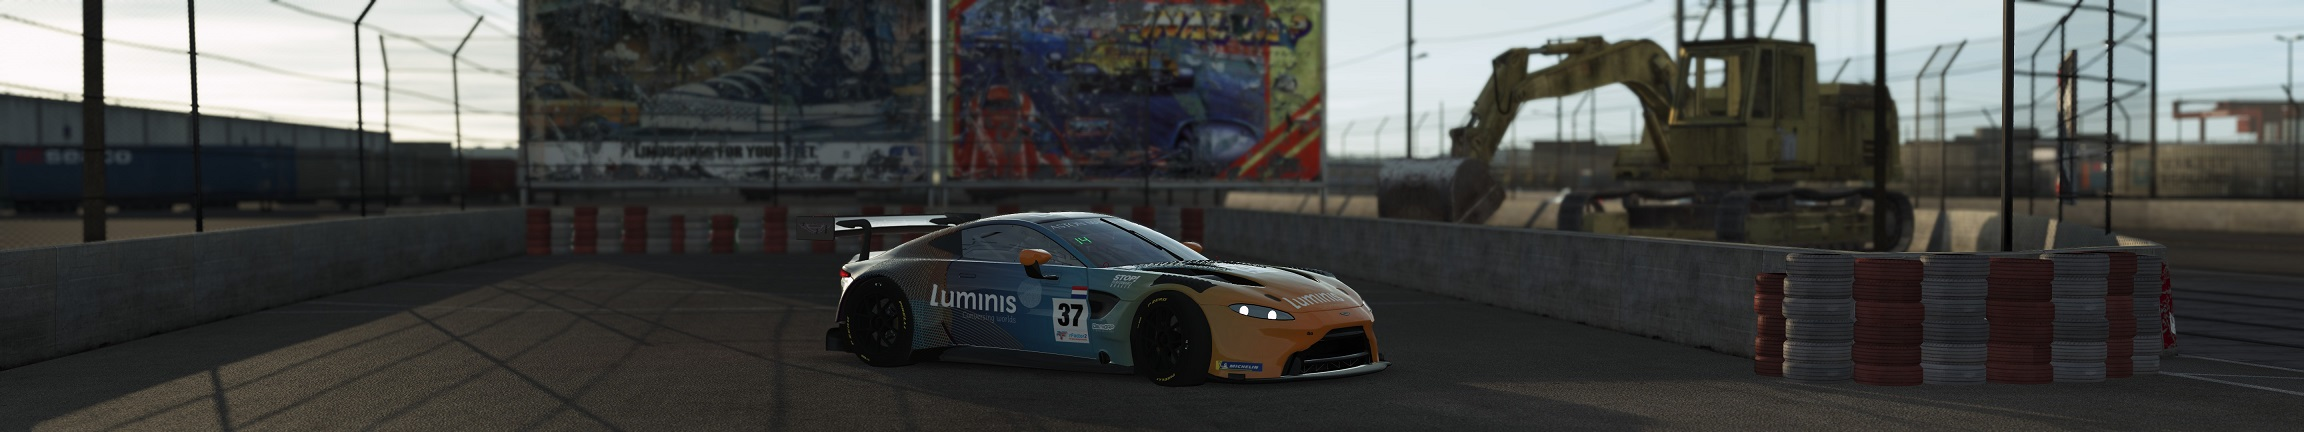 2 rF2 ASTON MARTIN at LESTER GP billboards copy.jpg